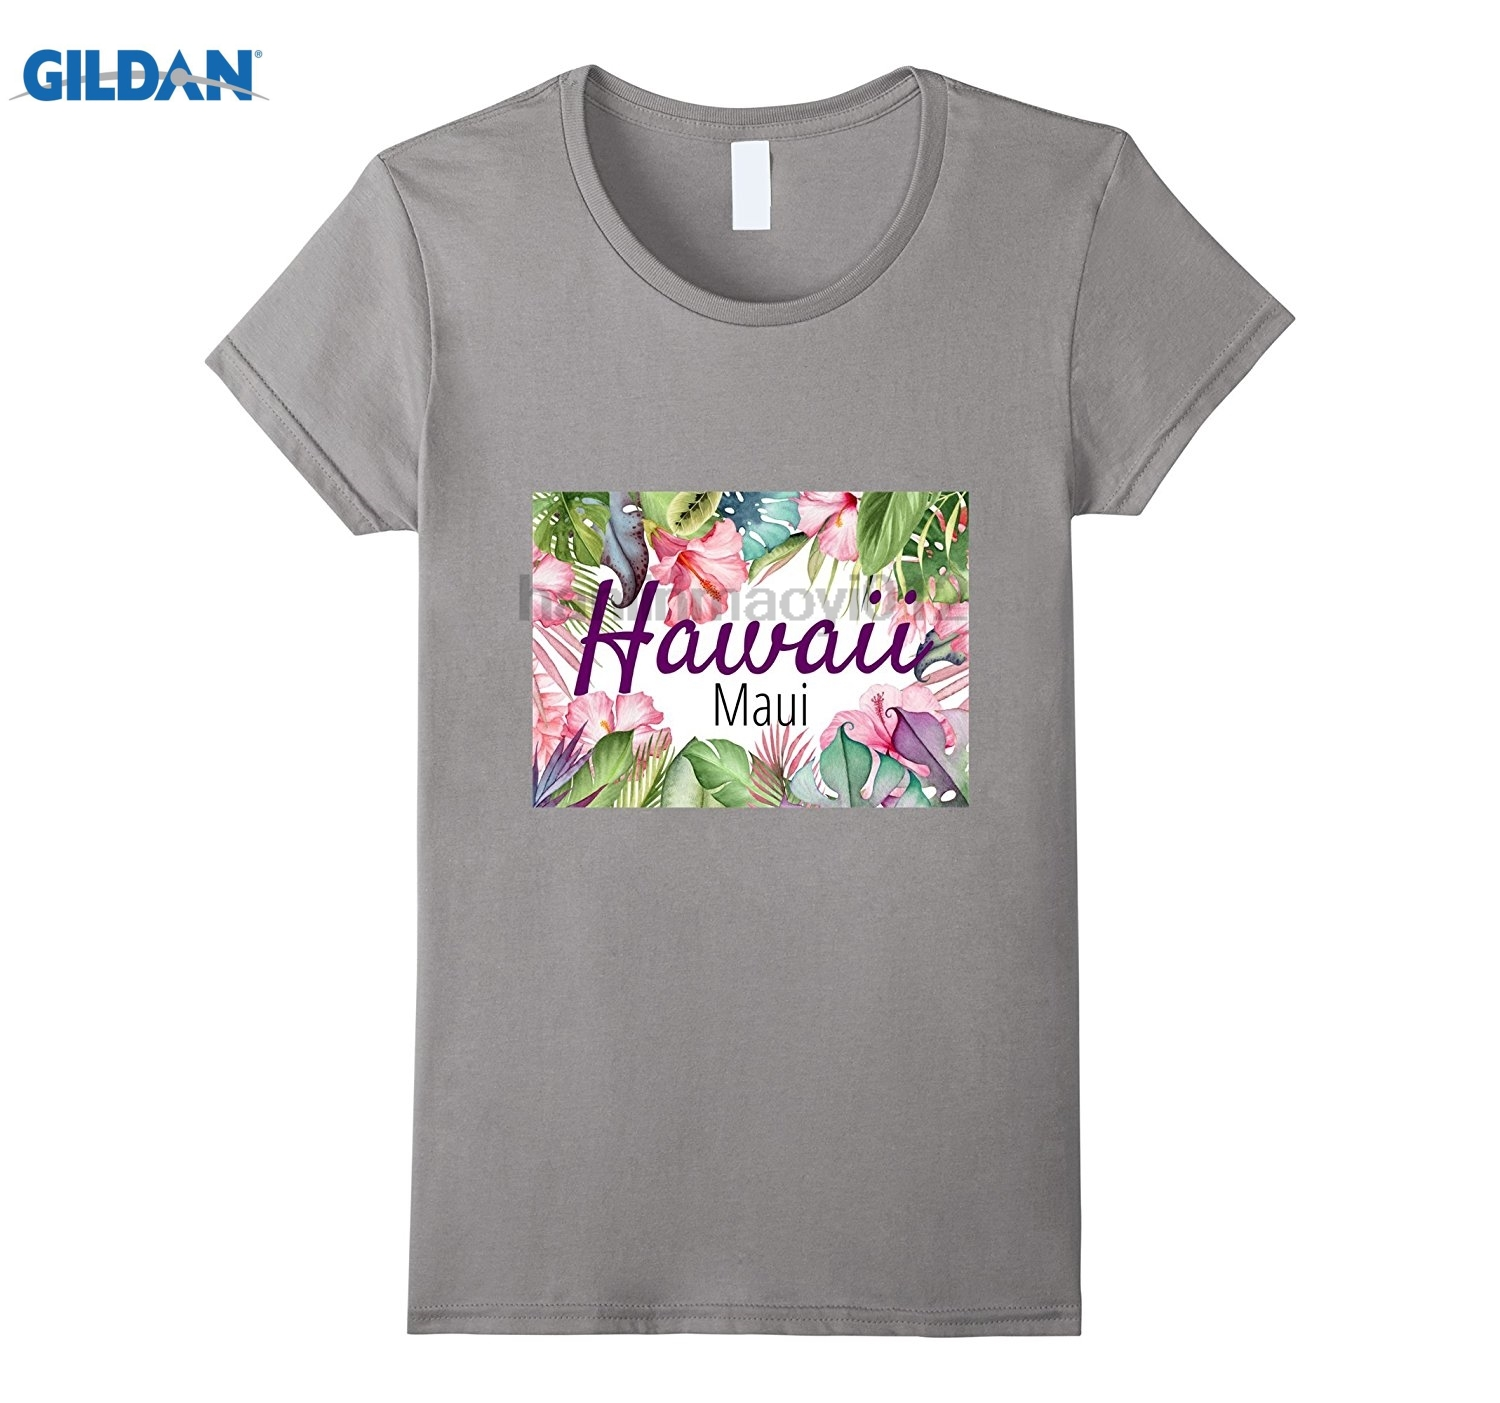 GILDAN Hawaiian Island Maui T-Shirt with tropical Flowers. glasses Womens T-shirt ...